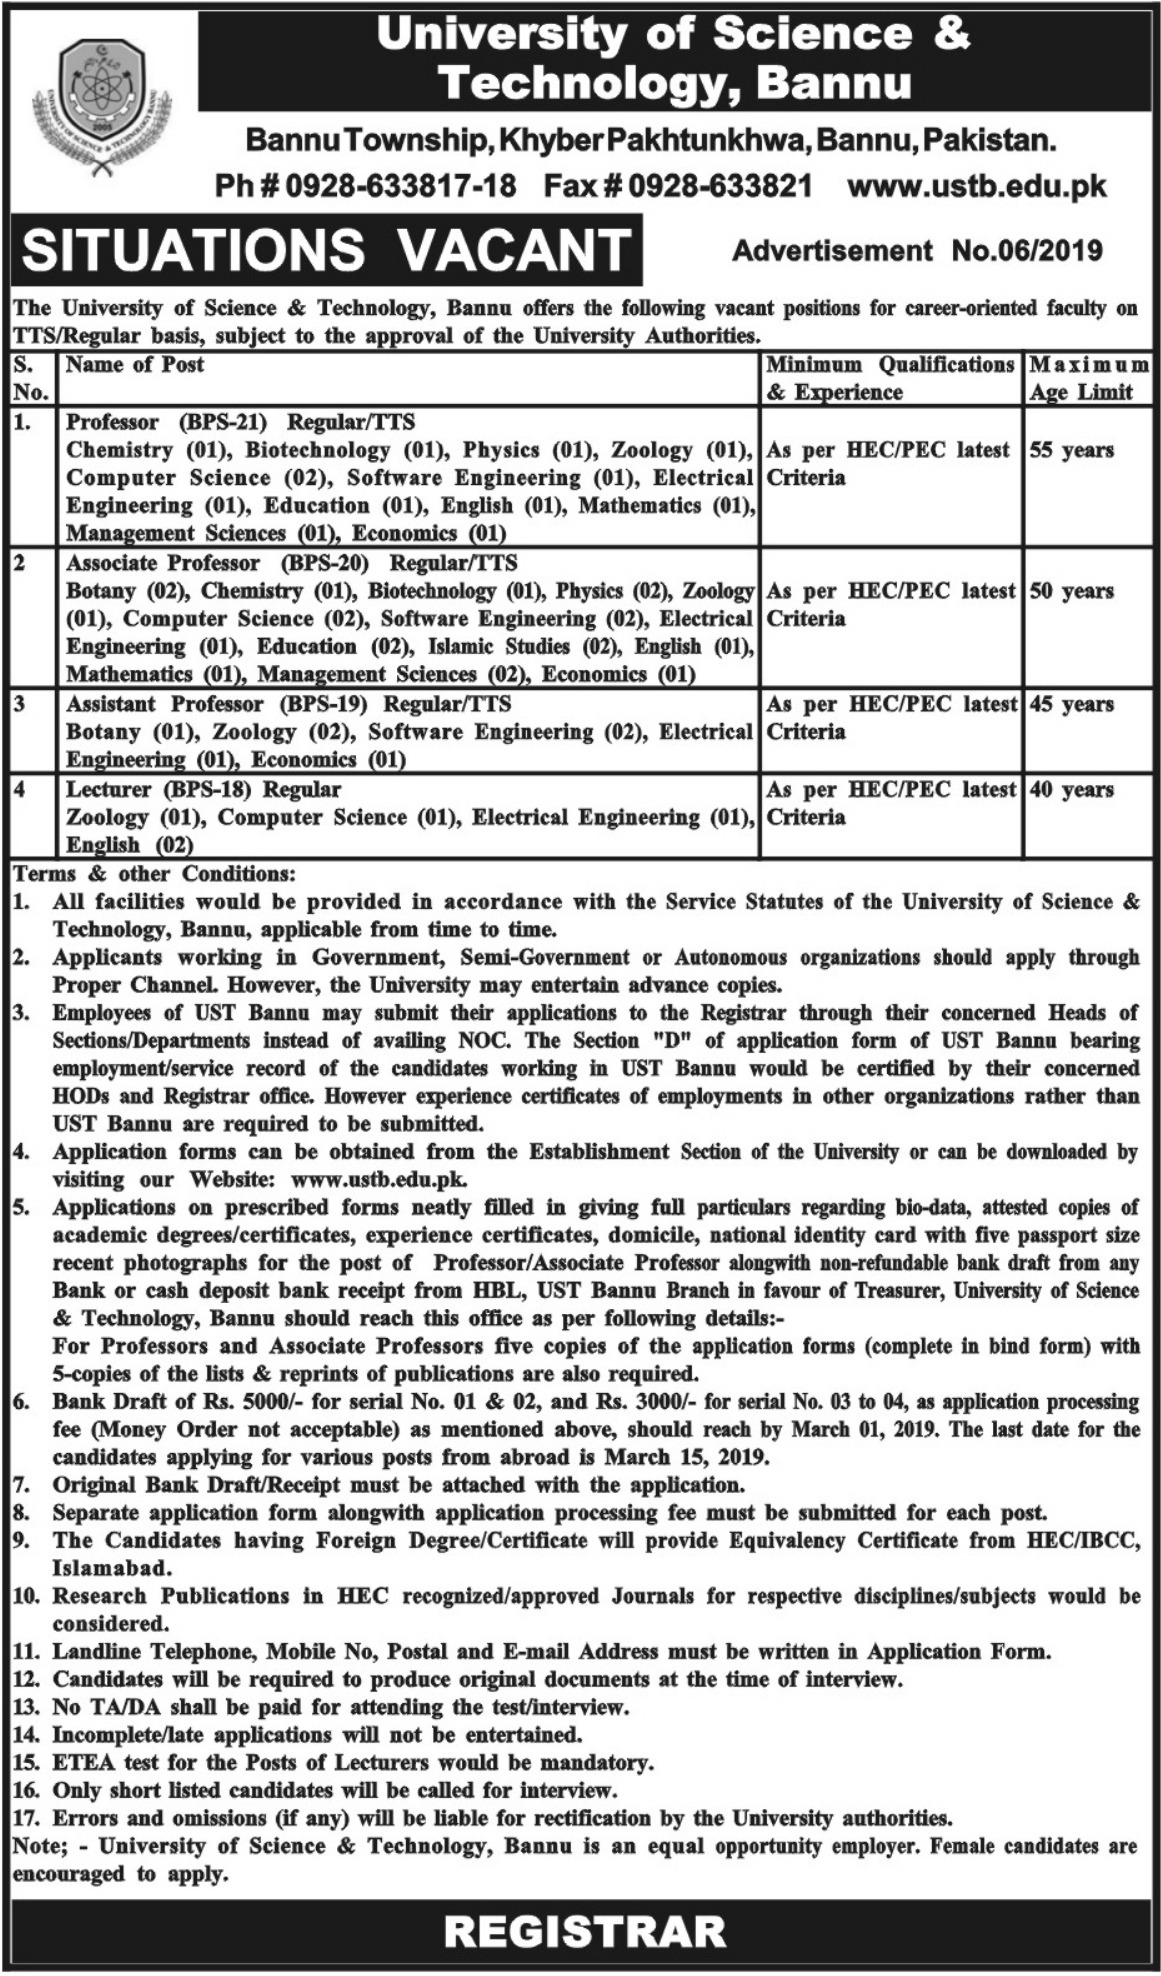 University of Science & Technology Bannu Jobs 2019 KPK Latest